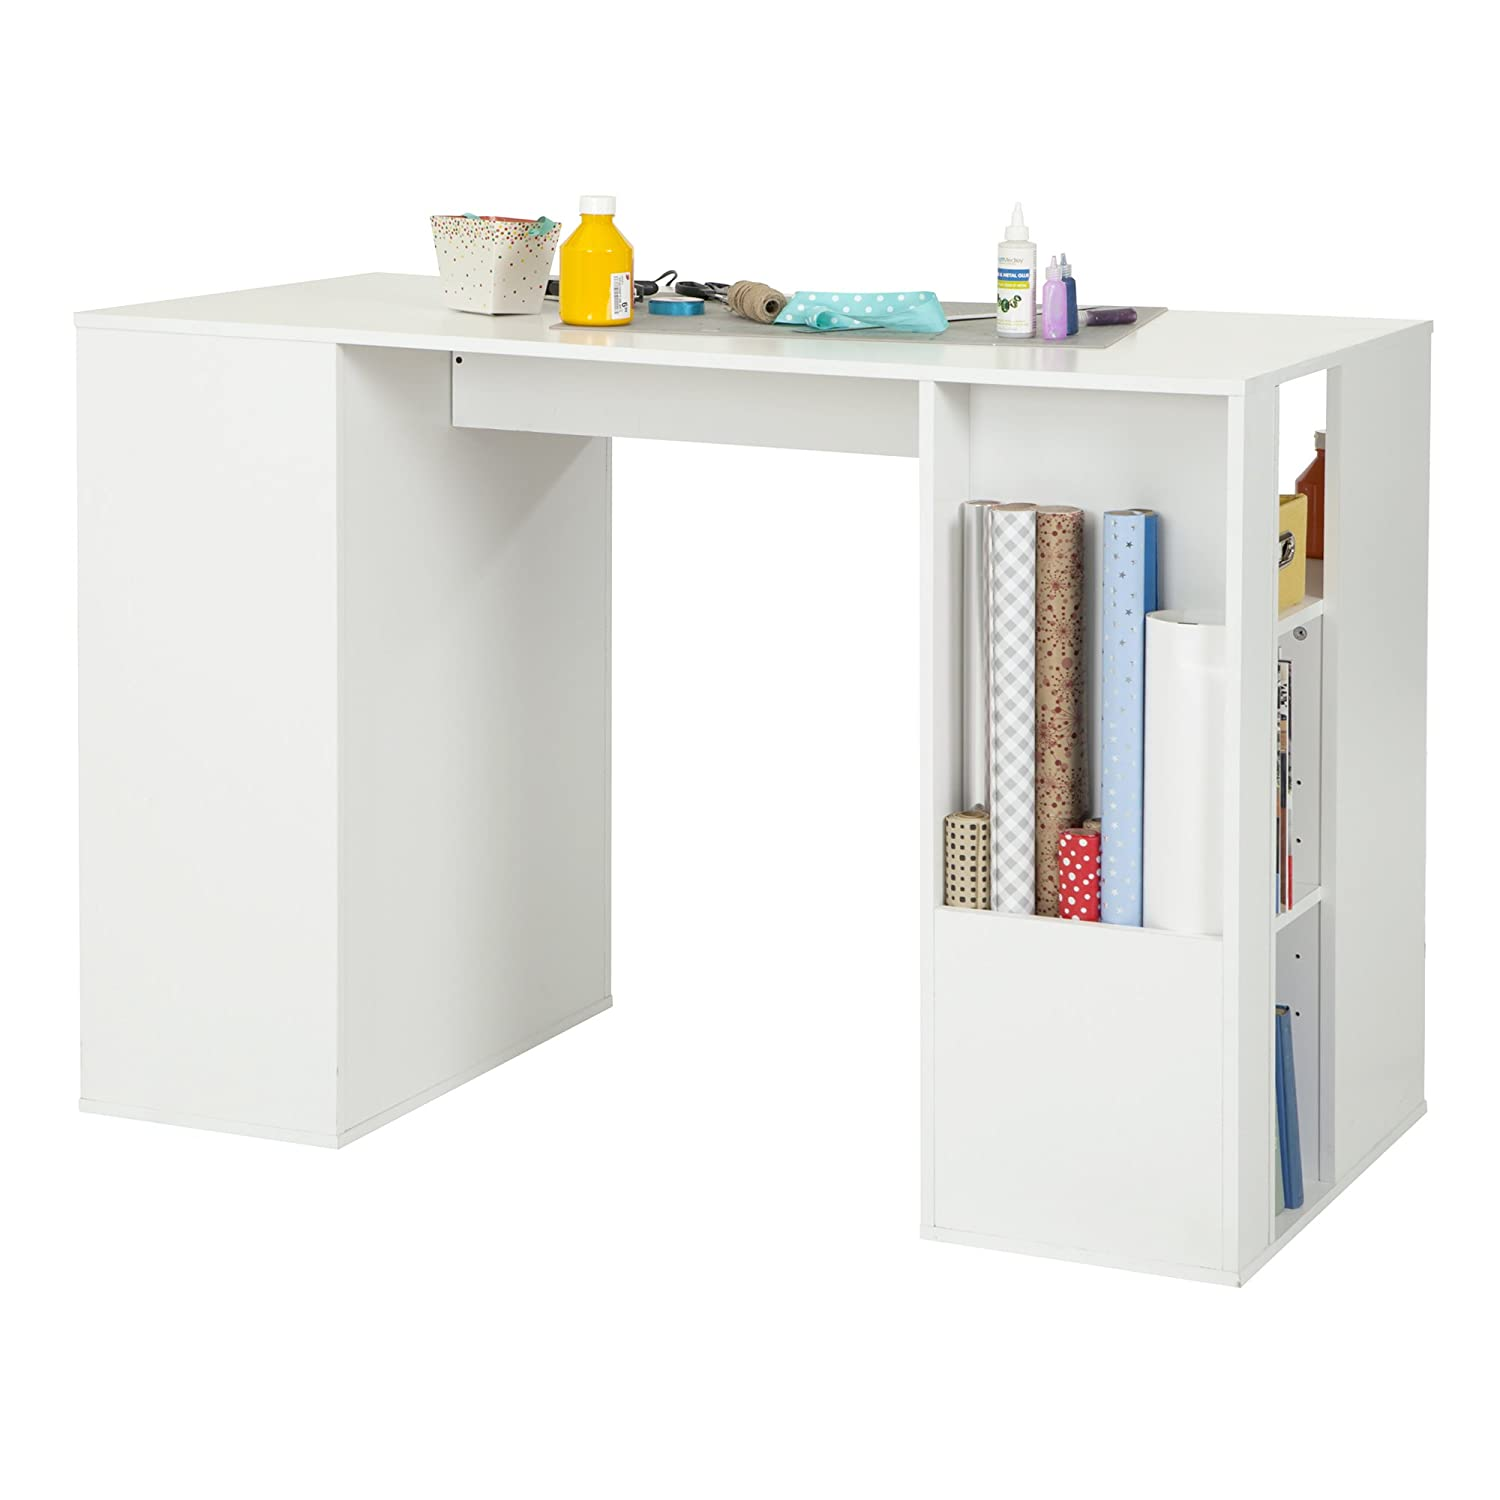 Amazon.com: South Shore Crea Pure White Counter-Height Craft Table and  Stool: Arts, Crafts & Sewing